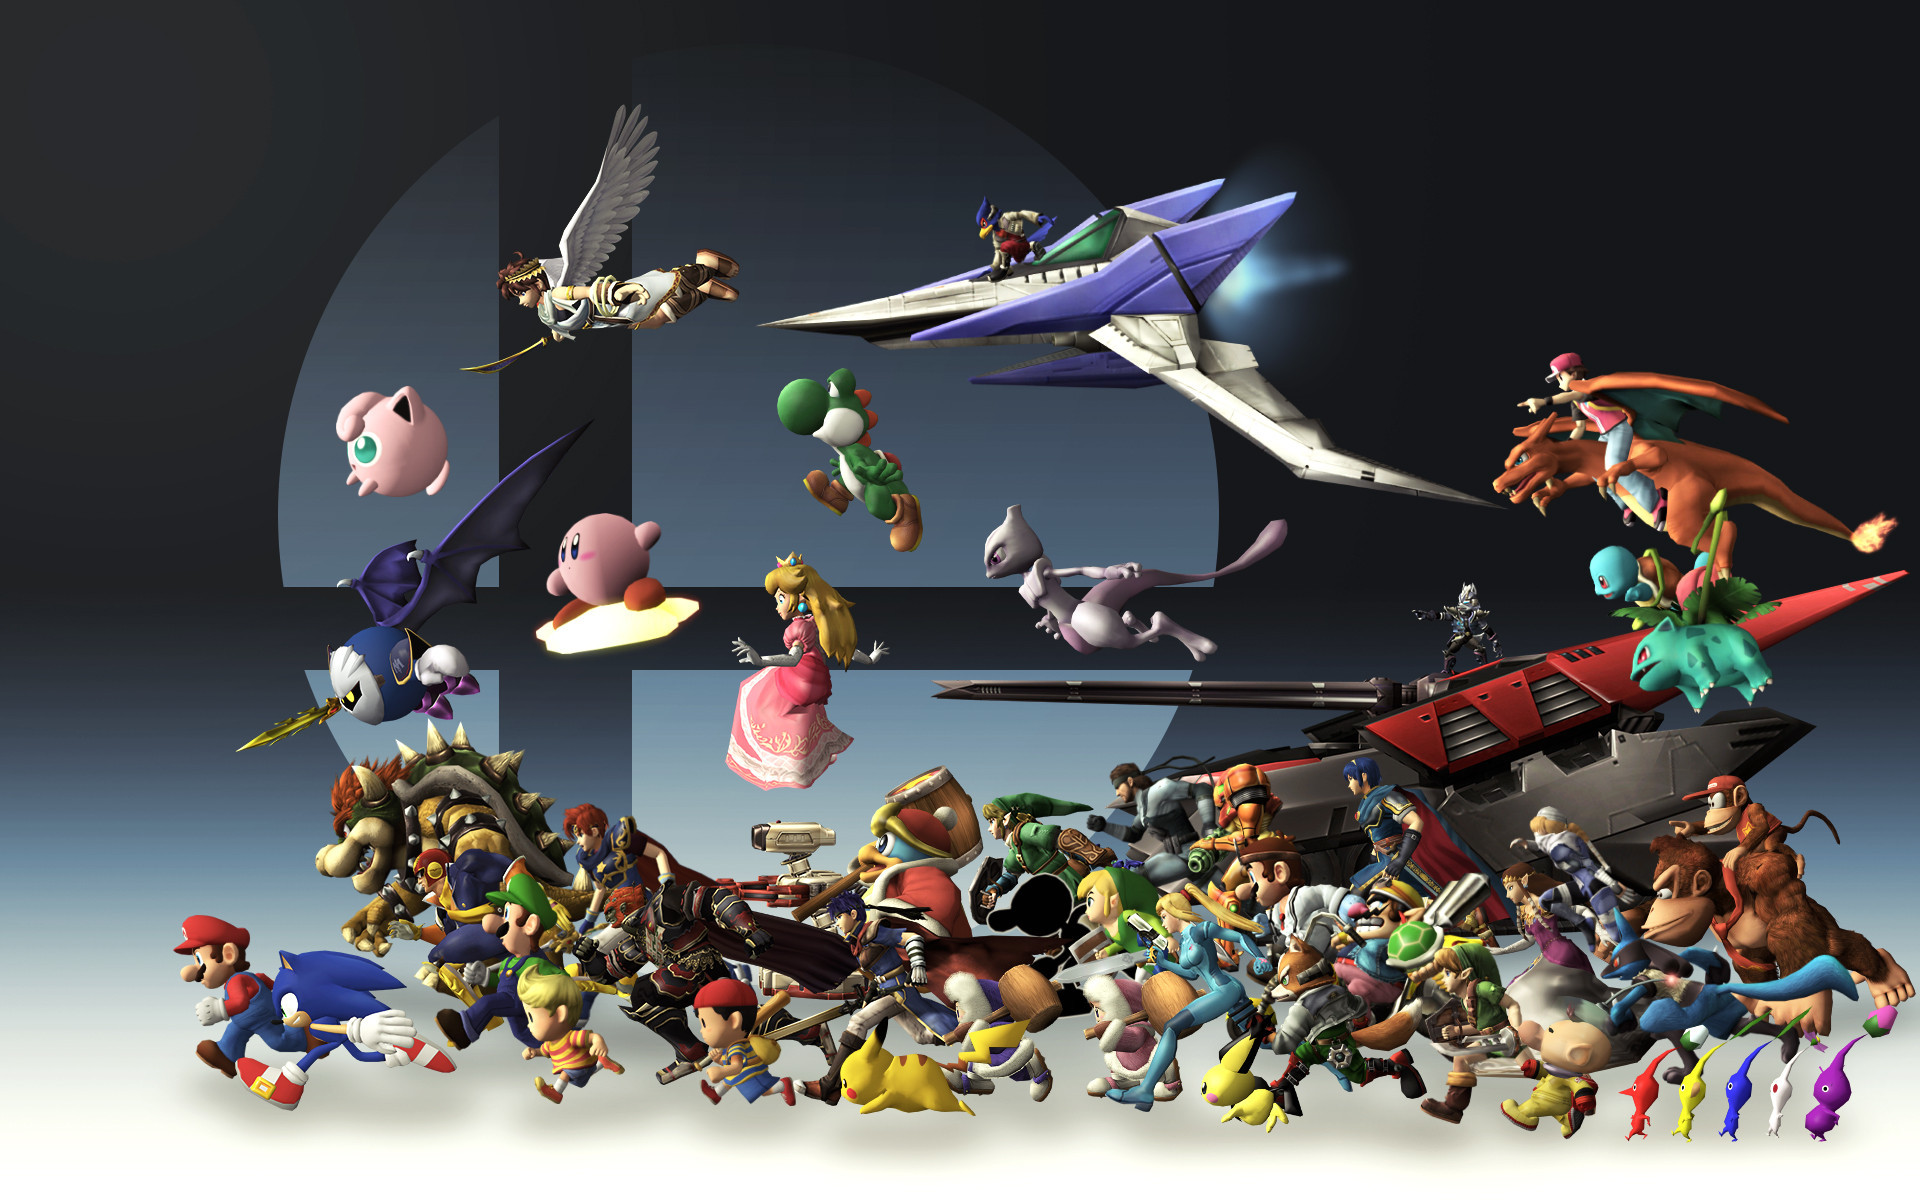 Ssbm Wallpapers Hd Wallpaper Collections 4kwallpaper Wiki